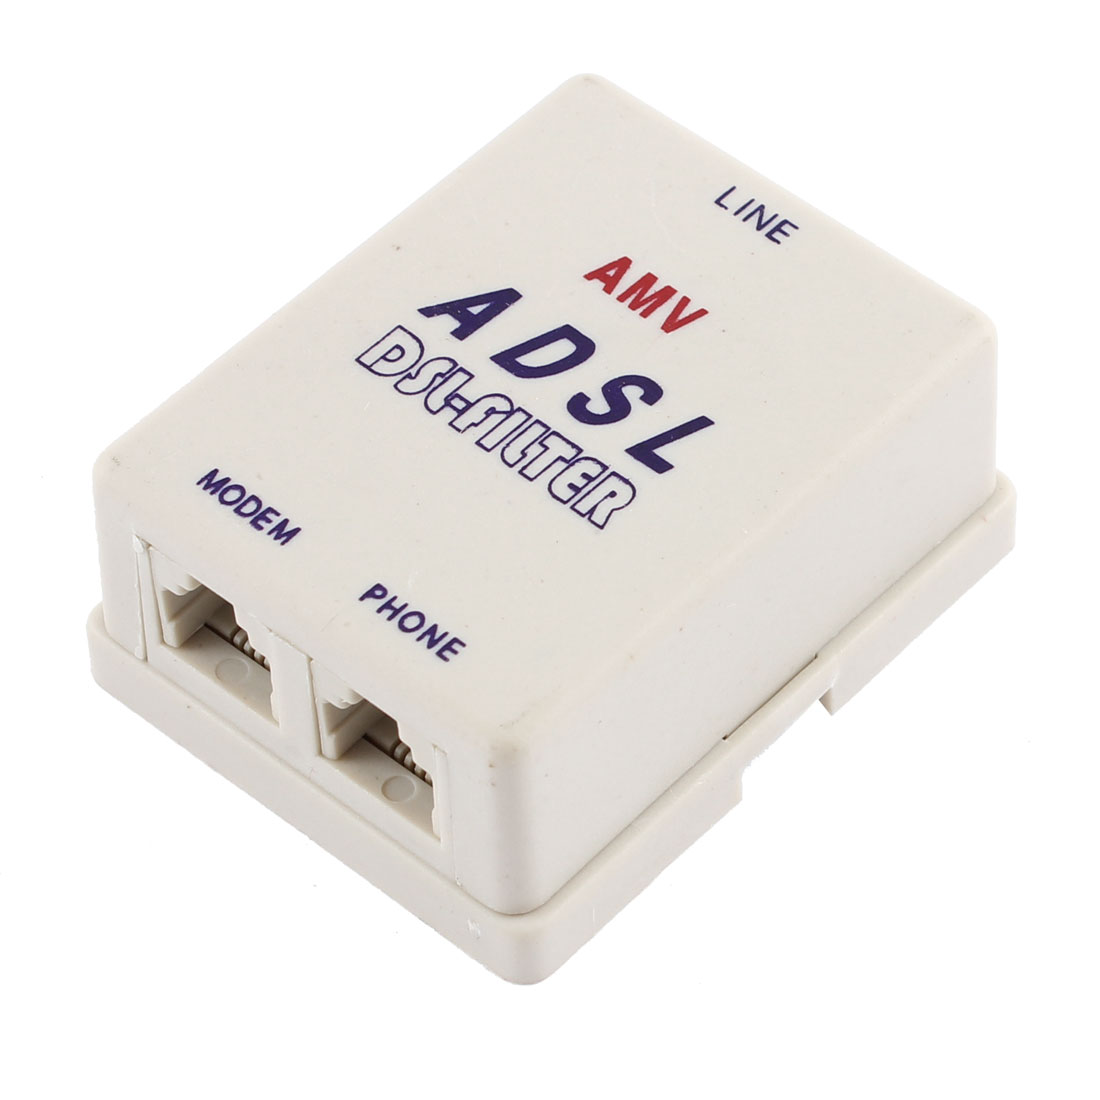 RJ11 6P2C Telephone Phone Networks Modem Splitter Adapter for Connecting ADSL Cable to Telephone Line